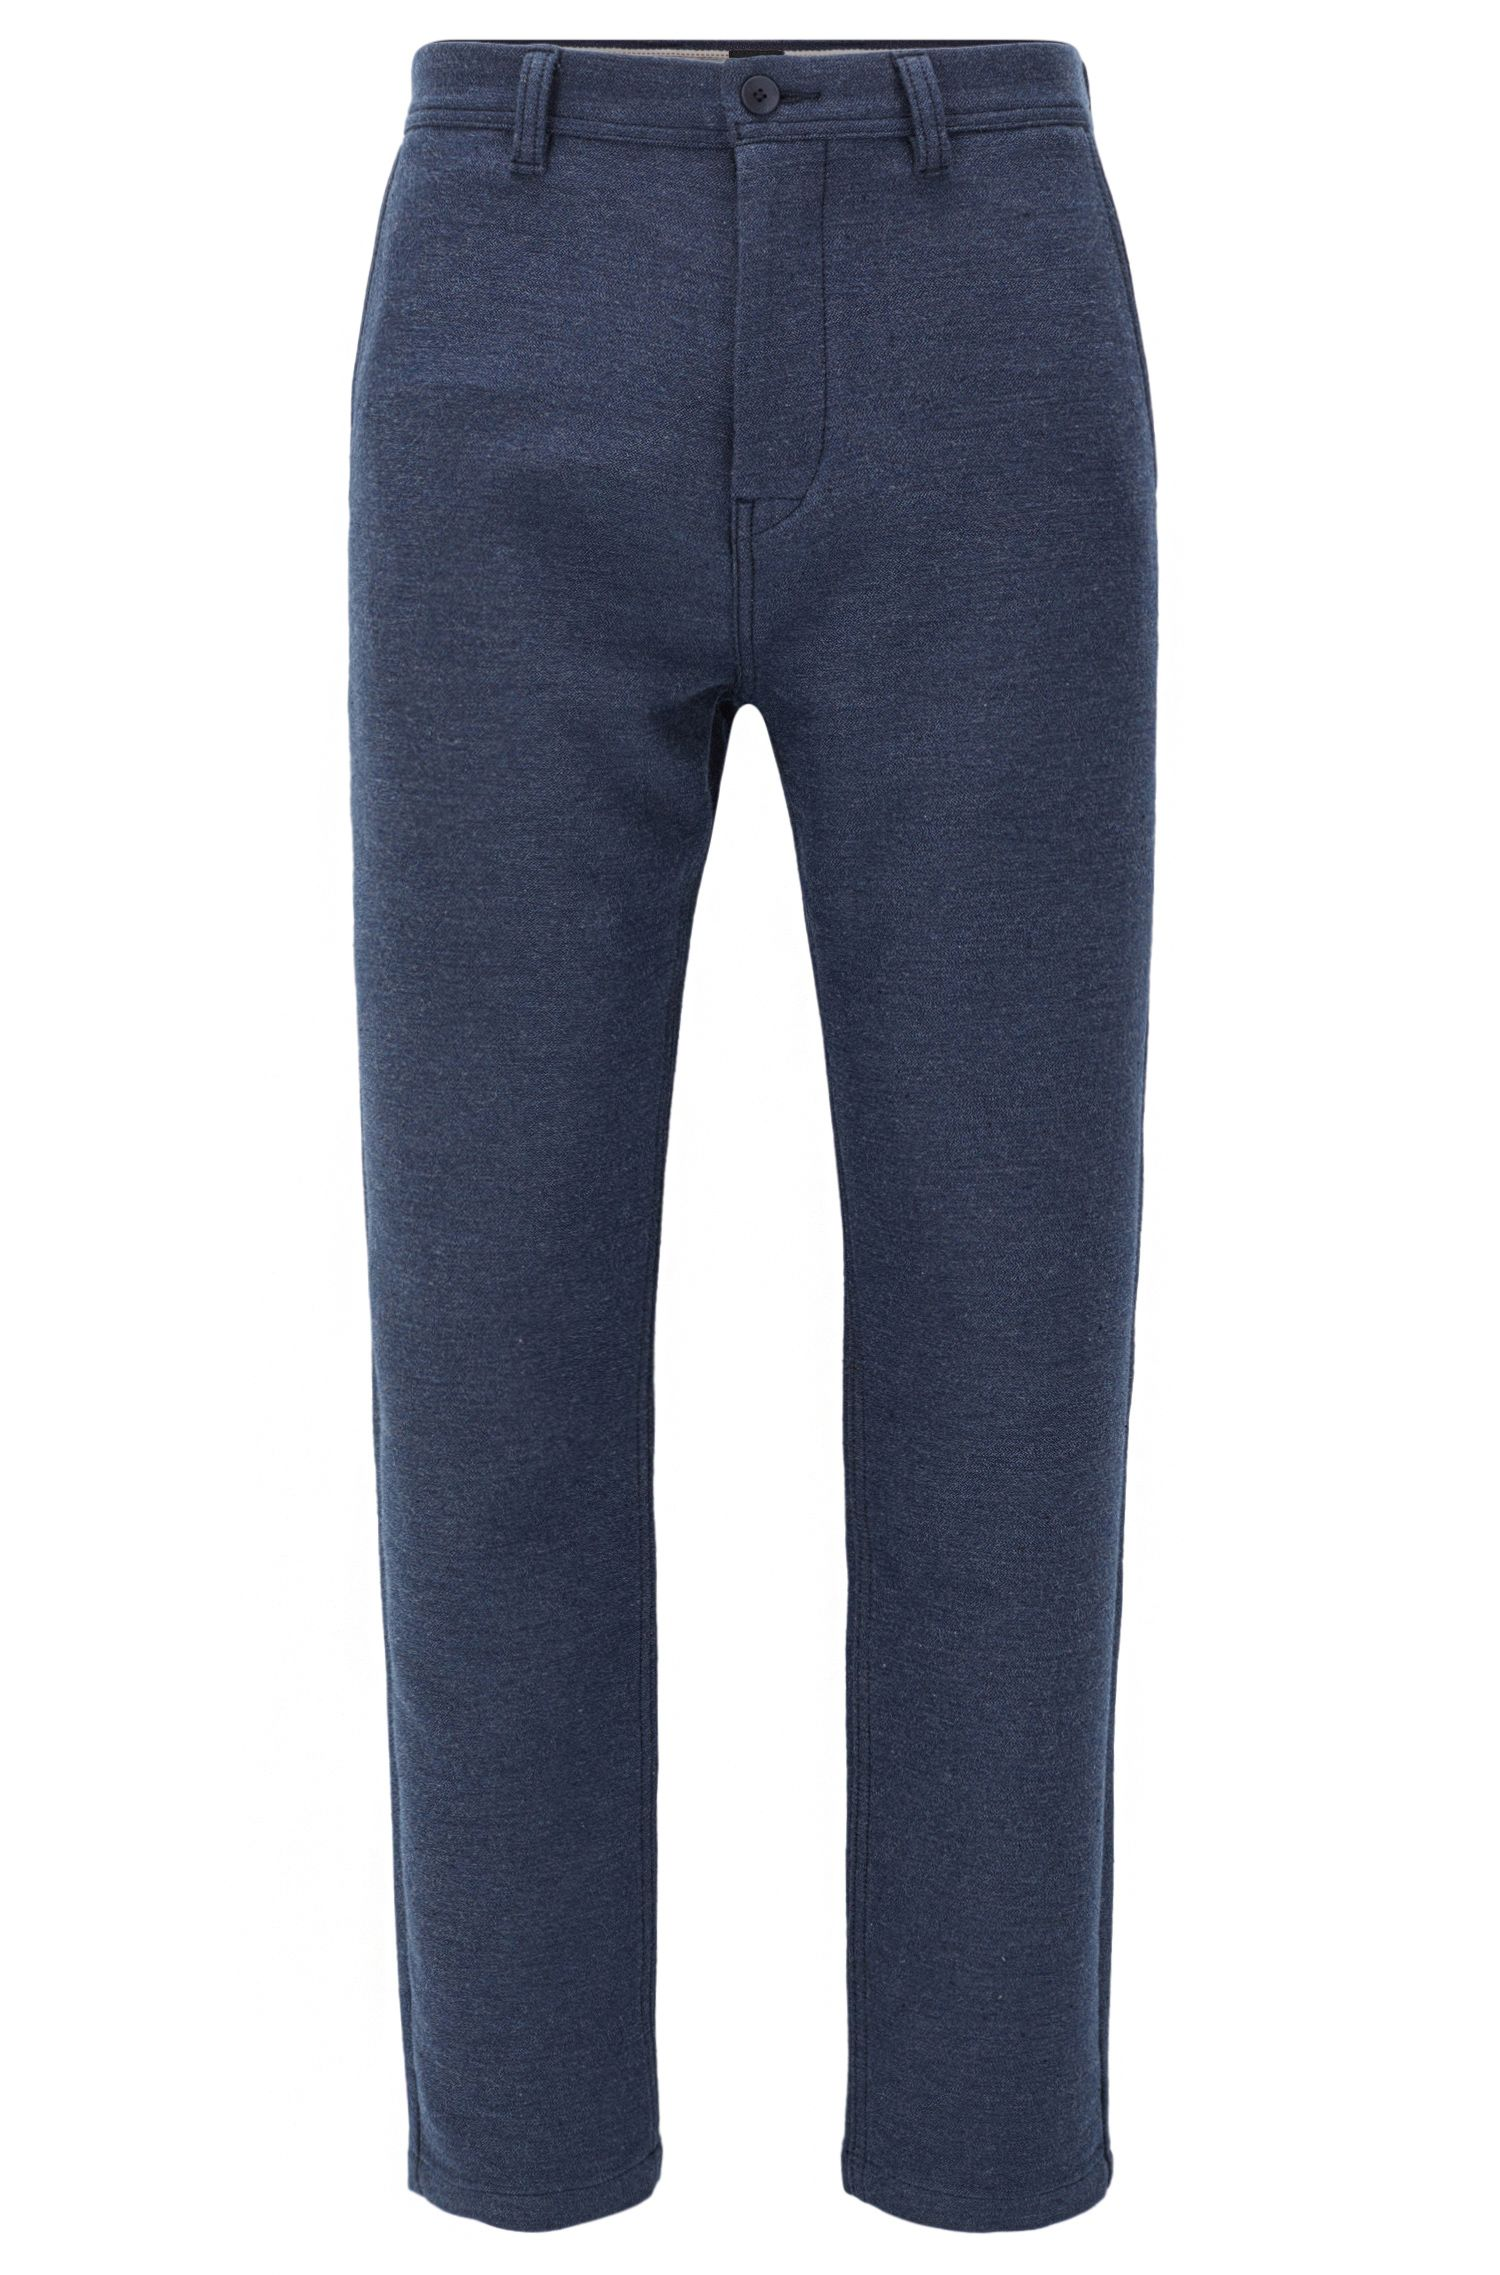 Pantalon Tapered Fit en coton mélangé